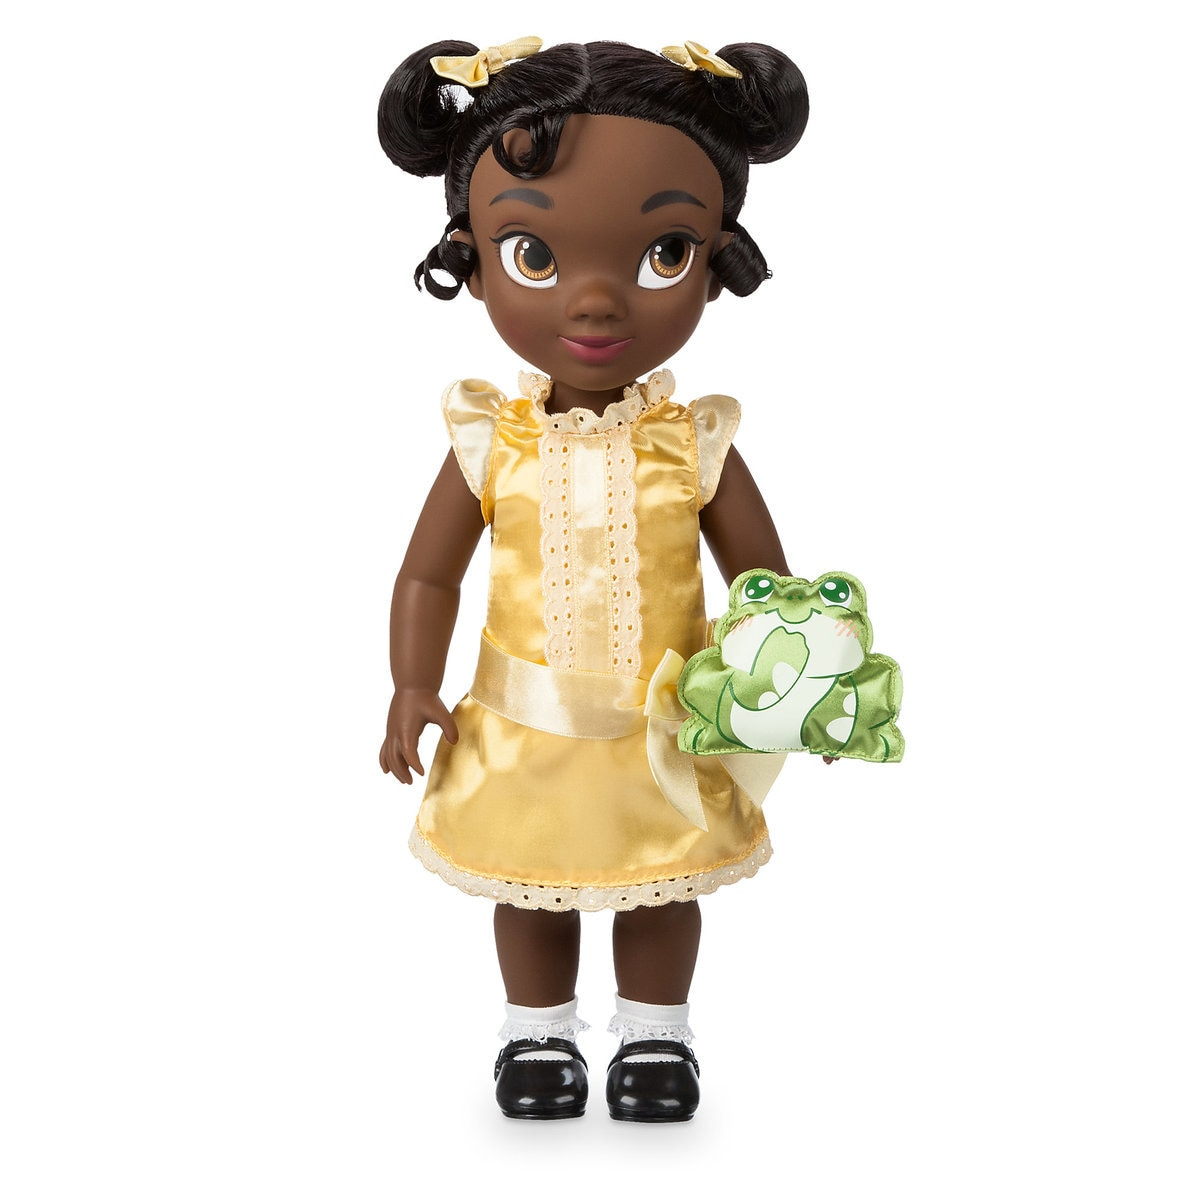 beb7879f807 Product Image of Disney Animators  Collection Tiana Doll - The Princess and  the Frog -